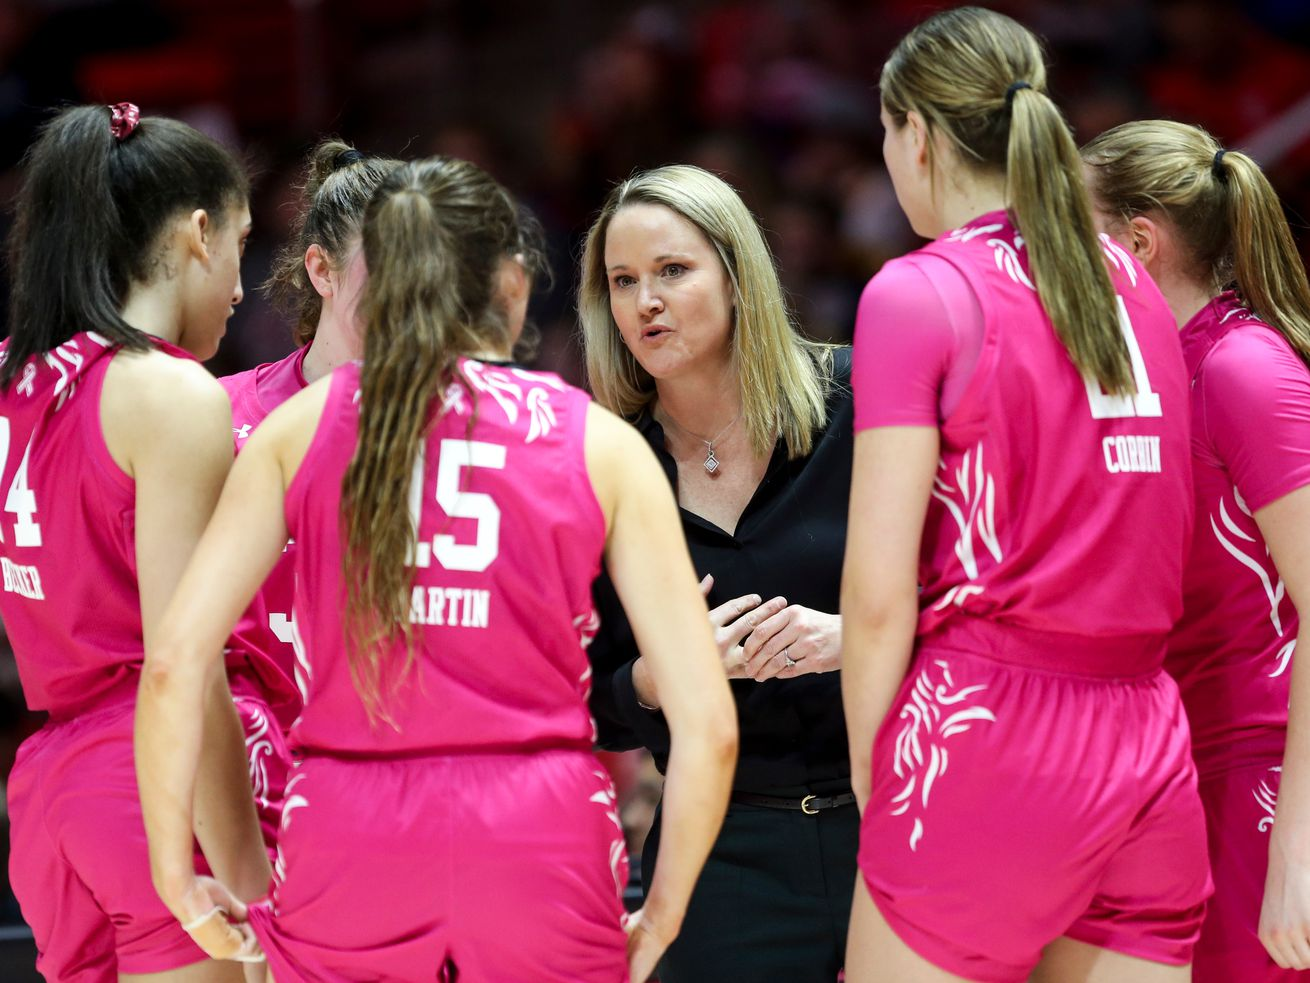 Utah Utes Head Coach Lynne Roberts talks to the team during a basketball game against the California Golden Bears at the Jon M. Huntsman Center in Salt Lake City on Sunday, Feb. 16, 2020.